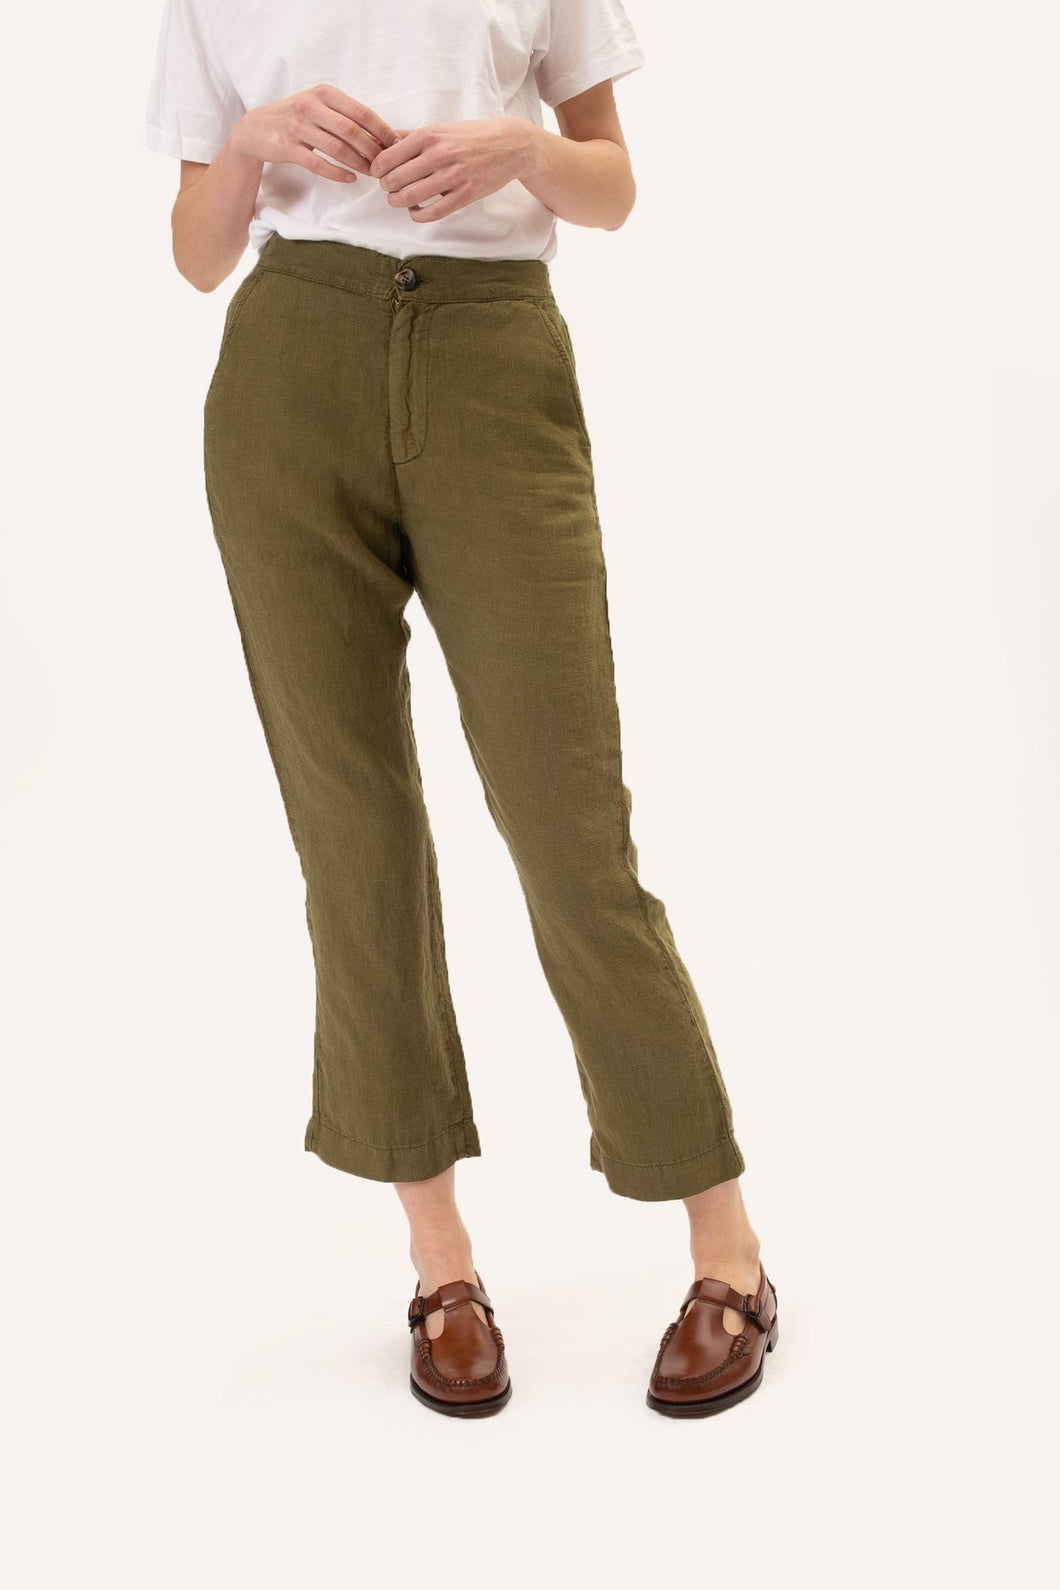 The inti pants DARK GREEN Mundaka